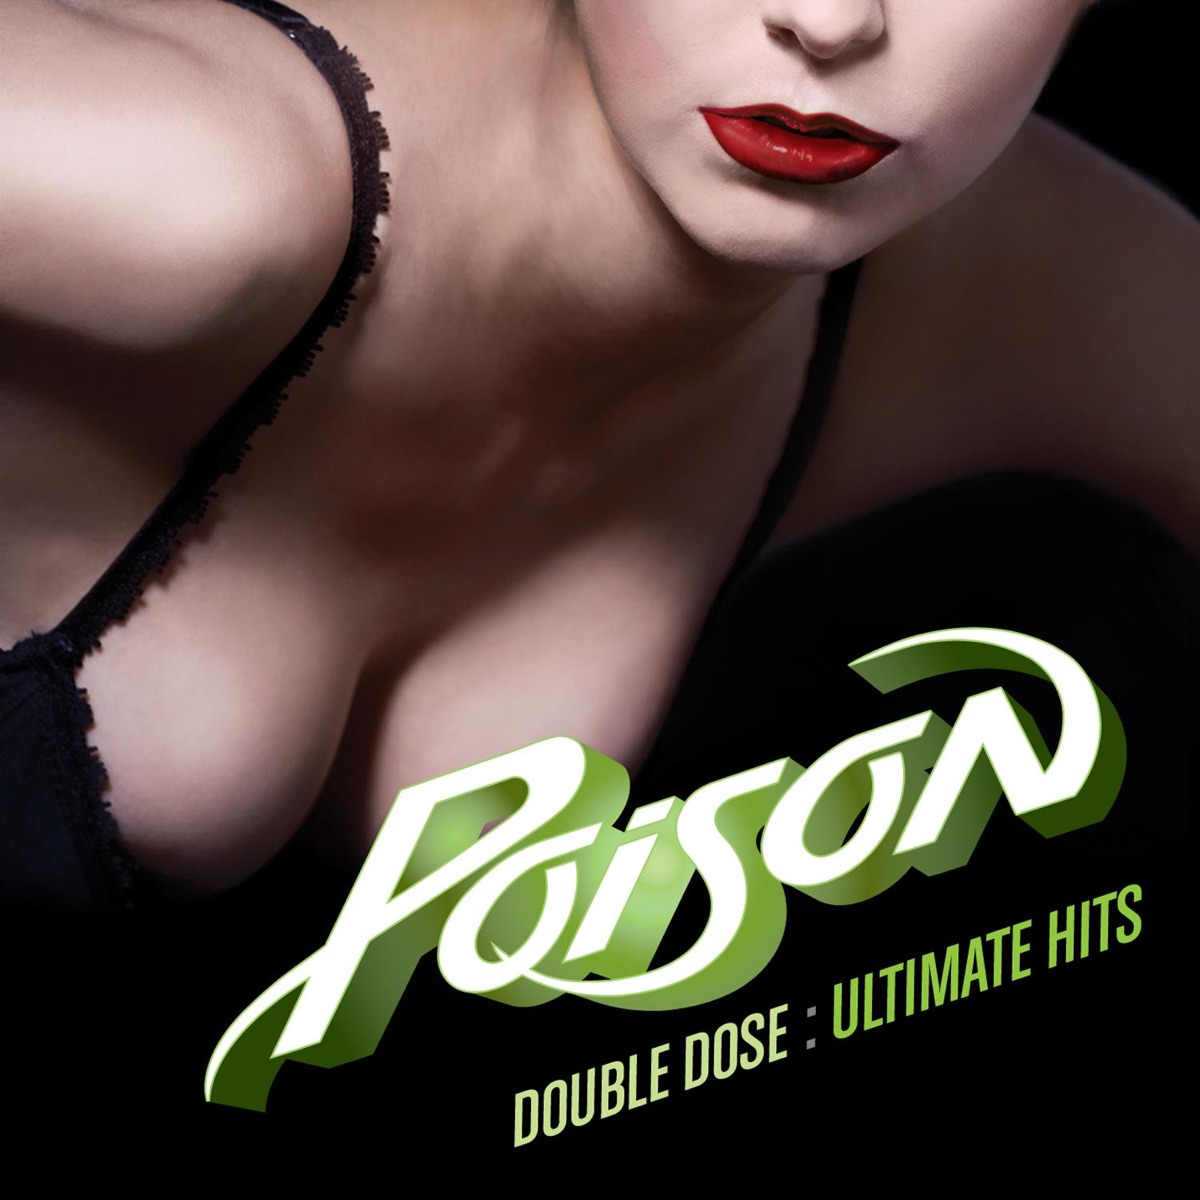 Double Dose - Ultimate Hits Remastered Poison CD cover